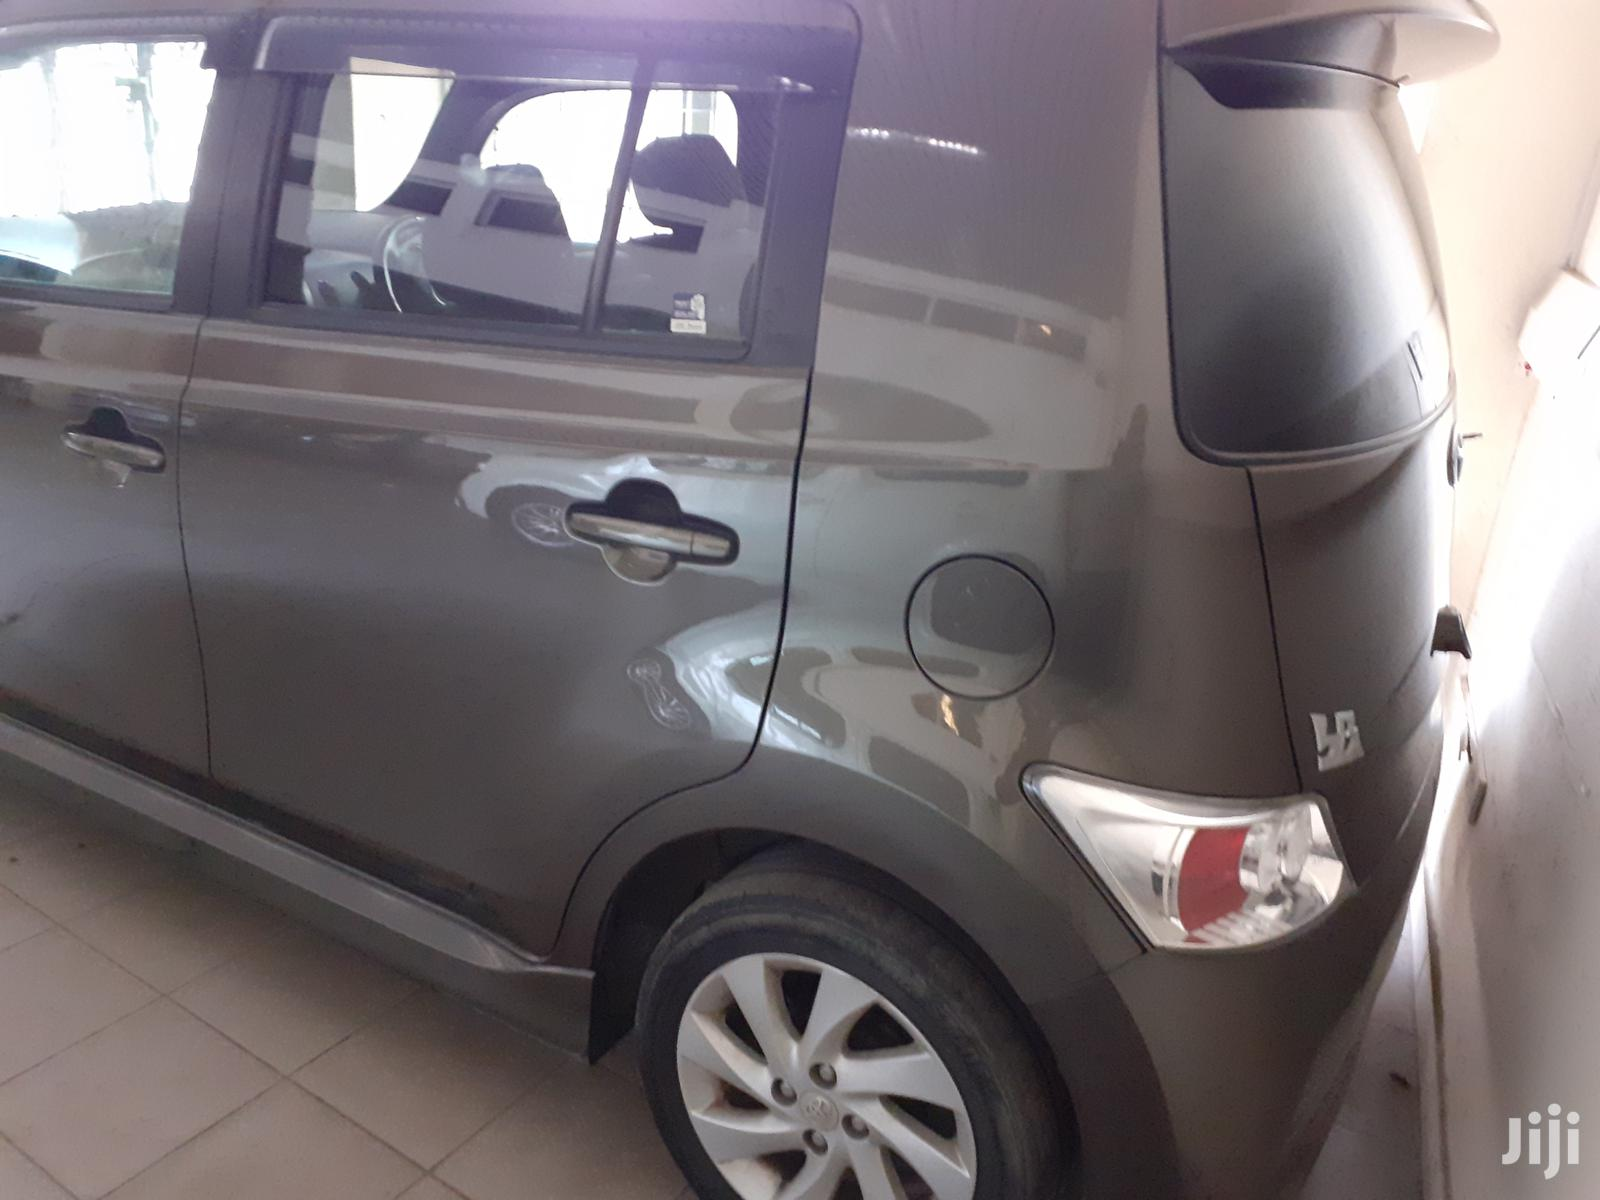 Toyota bB 2012 Gray | Cars for sale in Mvita, Mombasa, Kenya